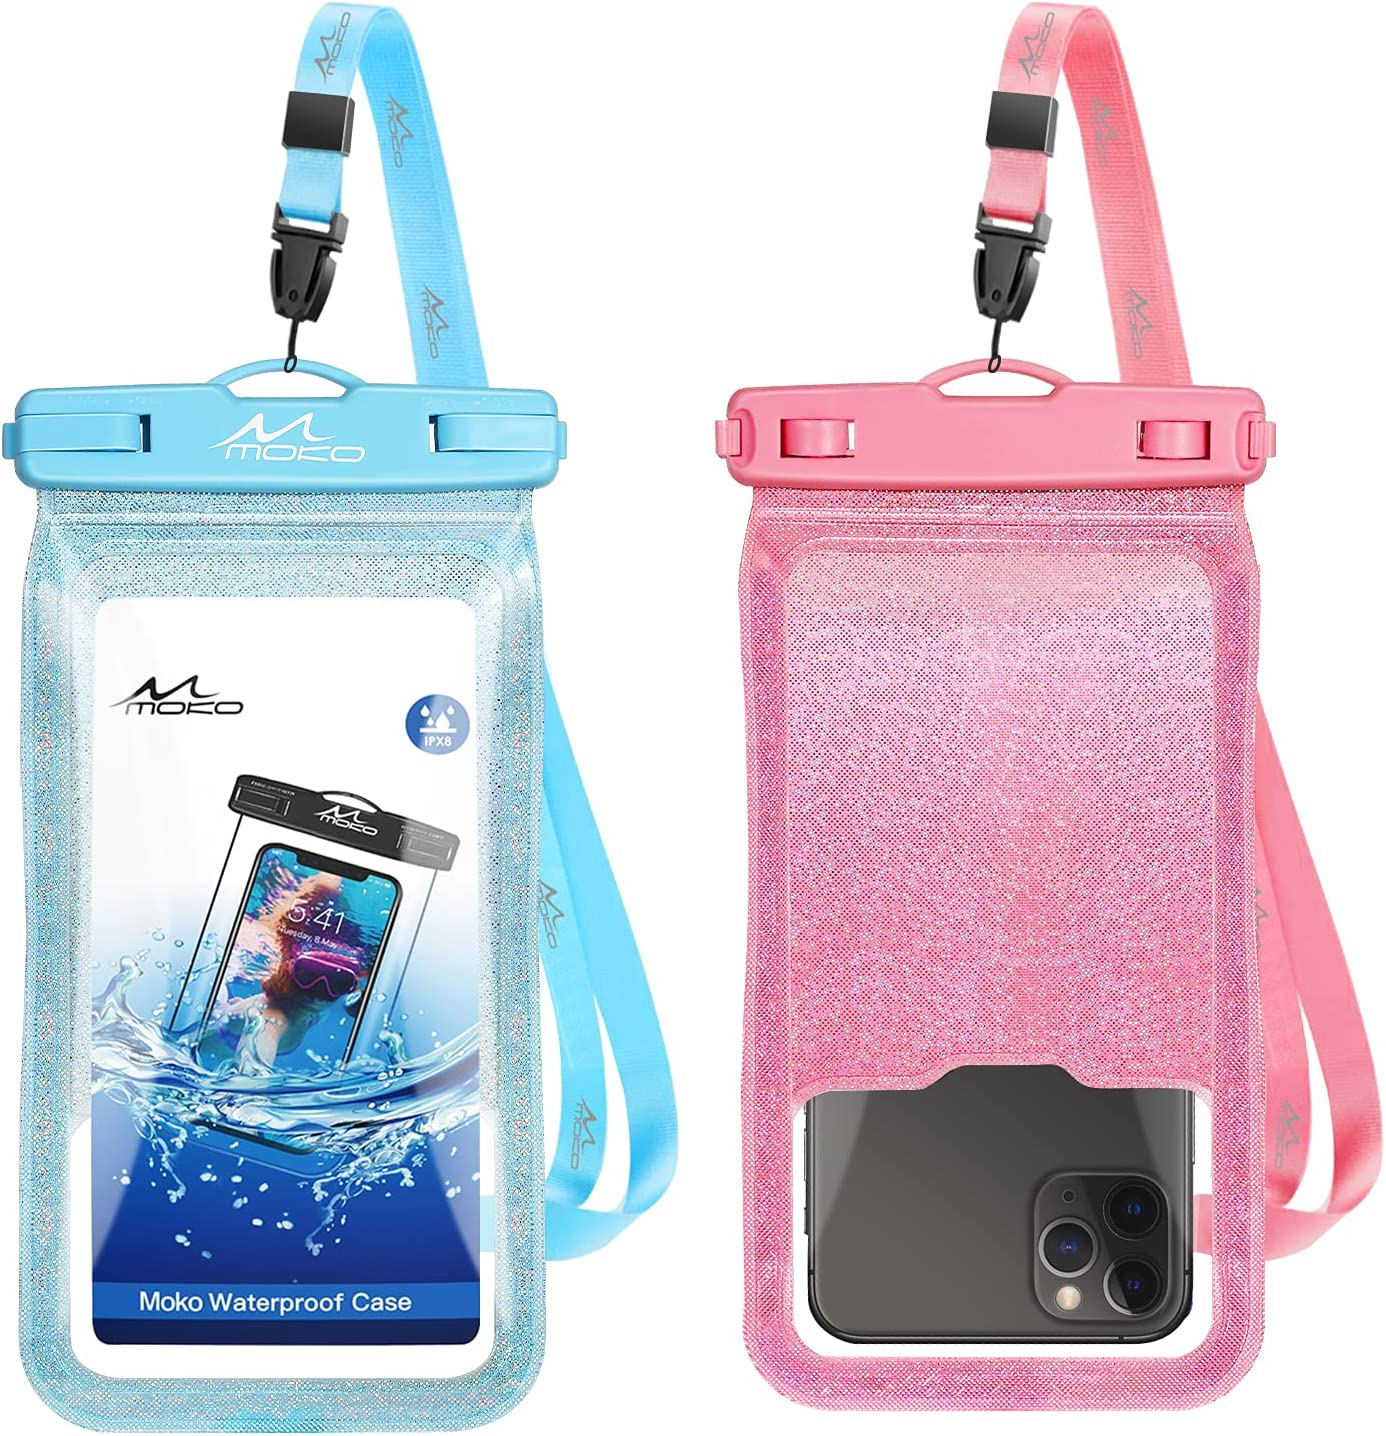 MoKo Waterproof Phone Pouch Holder Floating 2-Pack, IPX8 Glitter Waterproof Case Dry Bag Compatible for iPhone 13/13 Pro Max/iPhone 12 Mini/12 Pro Max 11 Pro Max/X/Xs Max/8/7/6/6s Plus, Galaxy S20/S21